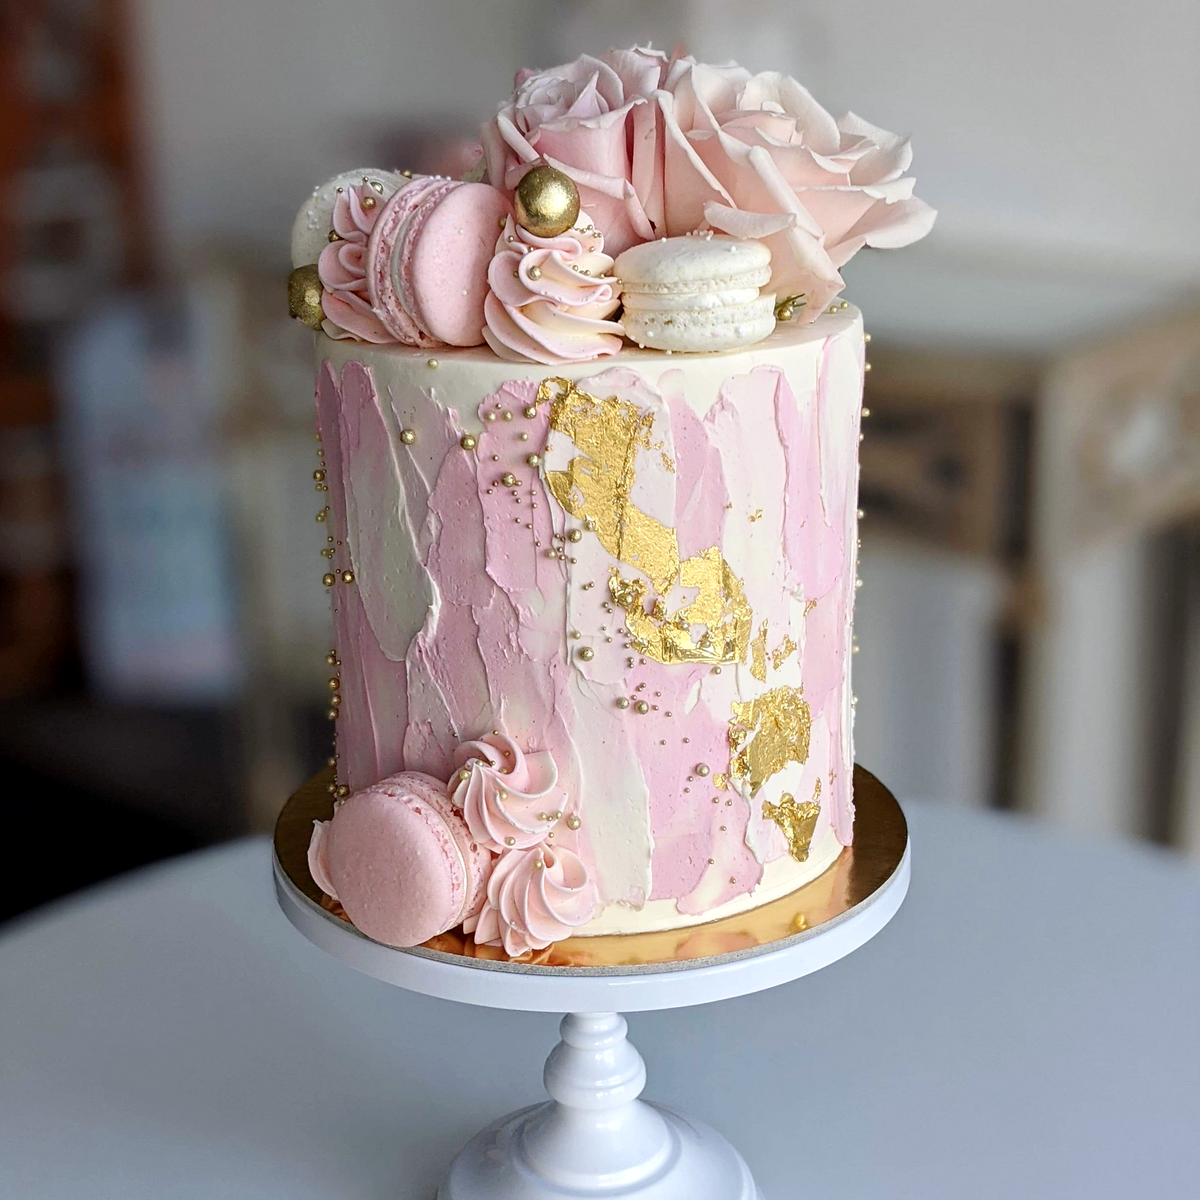 Whippt Kitchen - Luxe Cake Oct 2020 pink 2